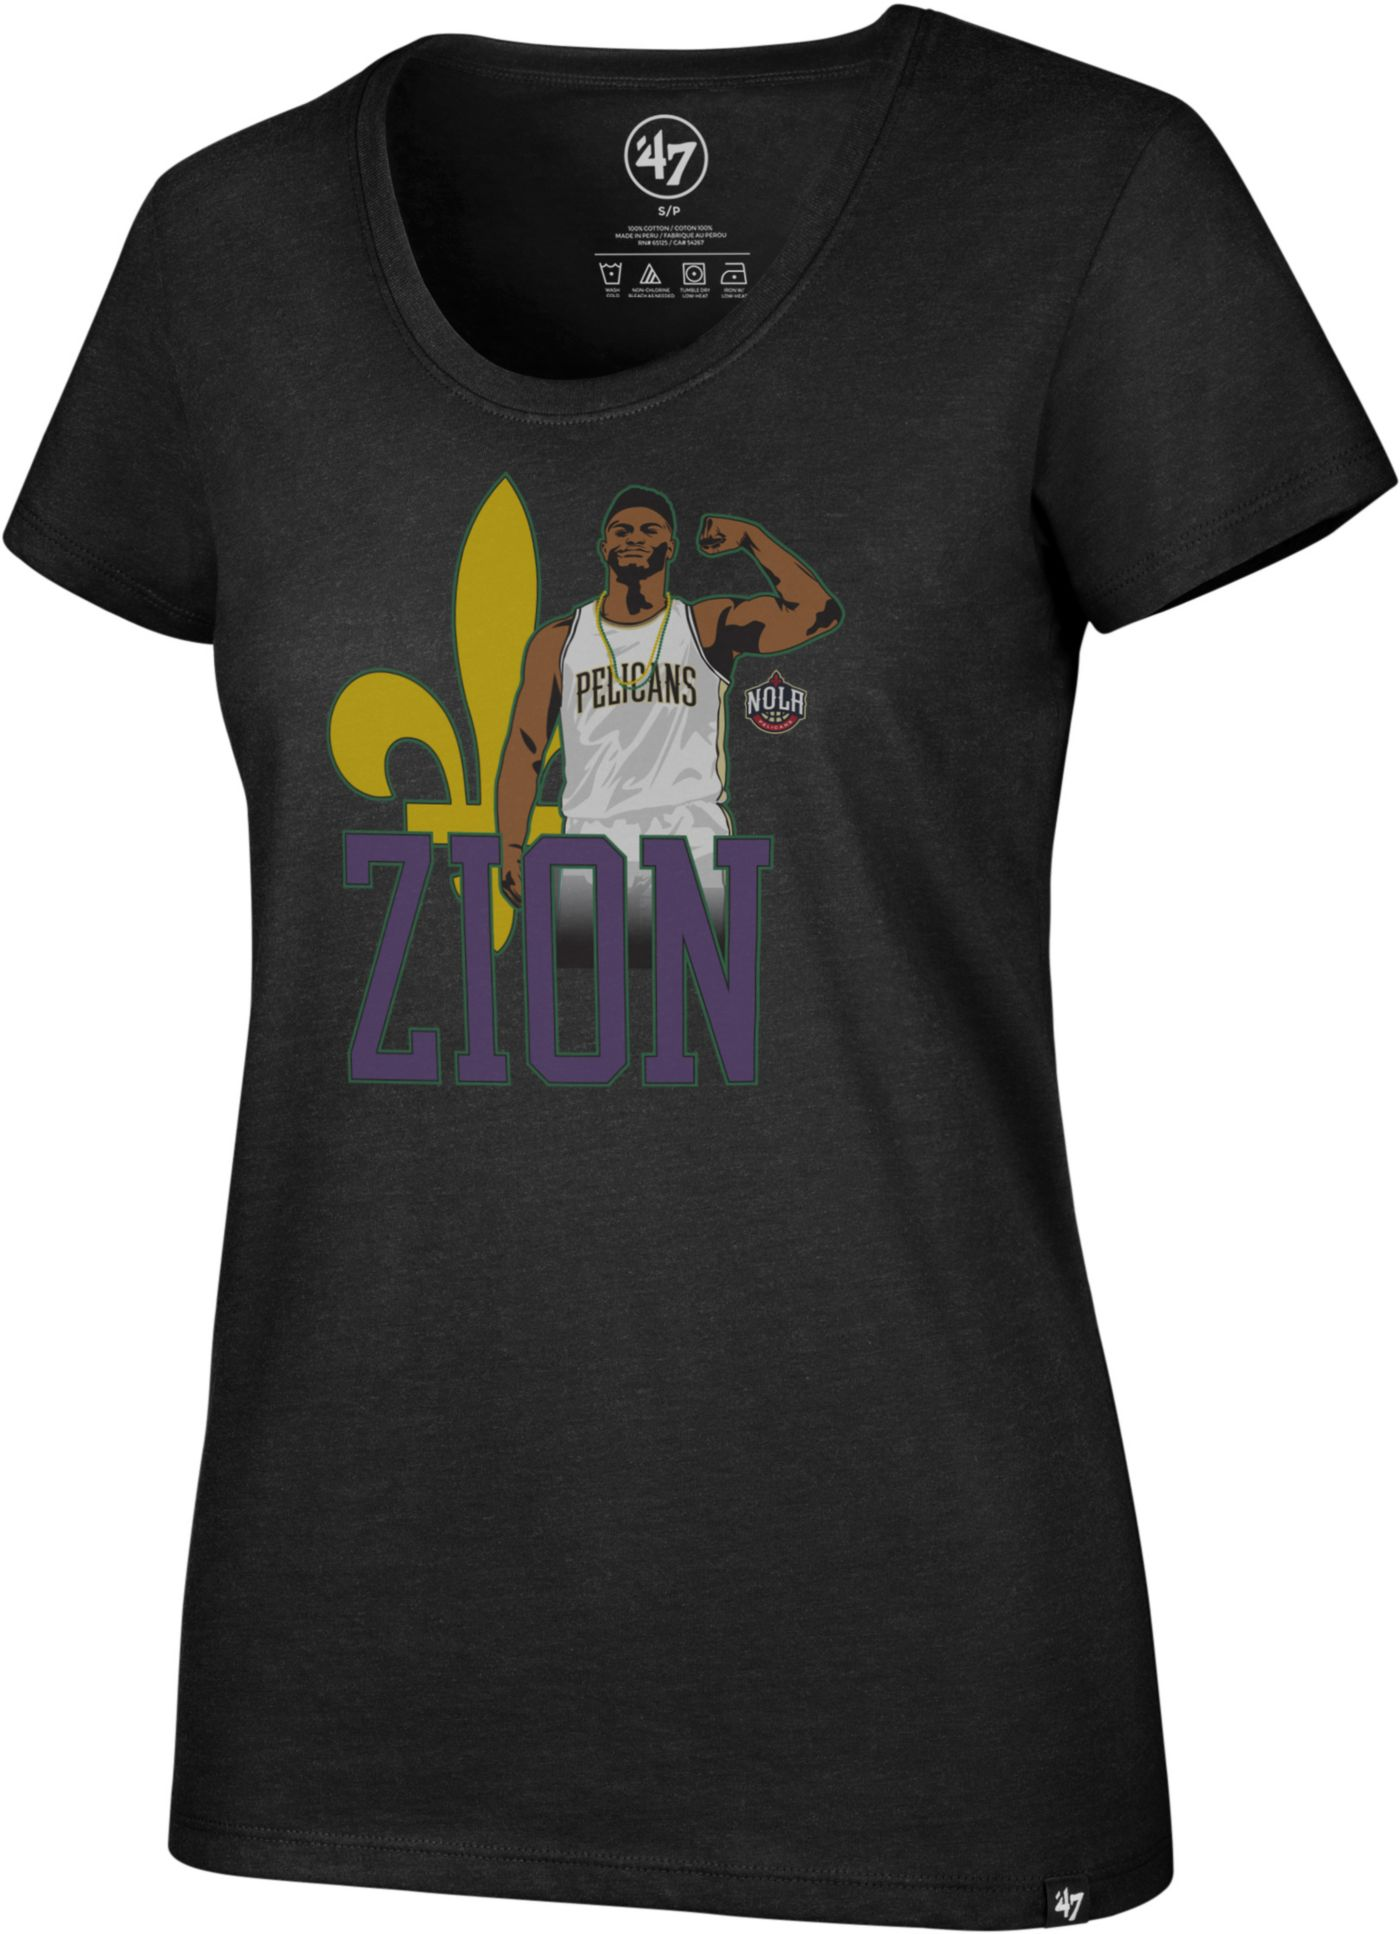 '47 Women's New Orleans Pelicans Zion Williamson Black Scoop Neck T-Shirt